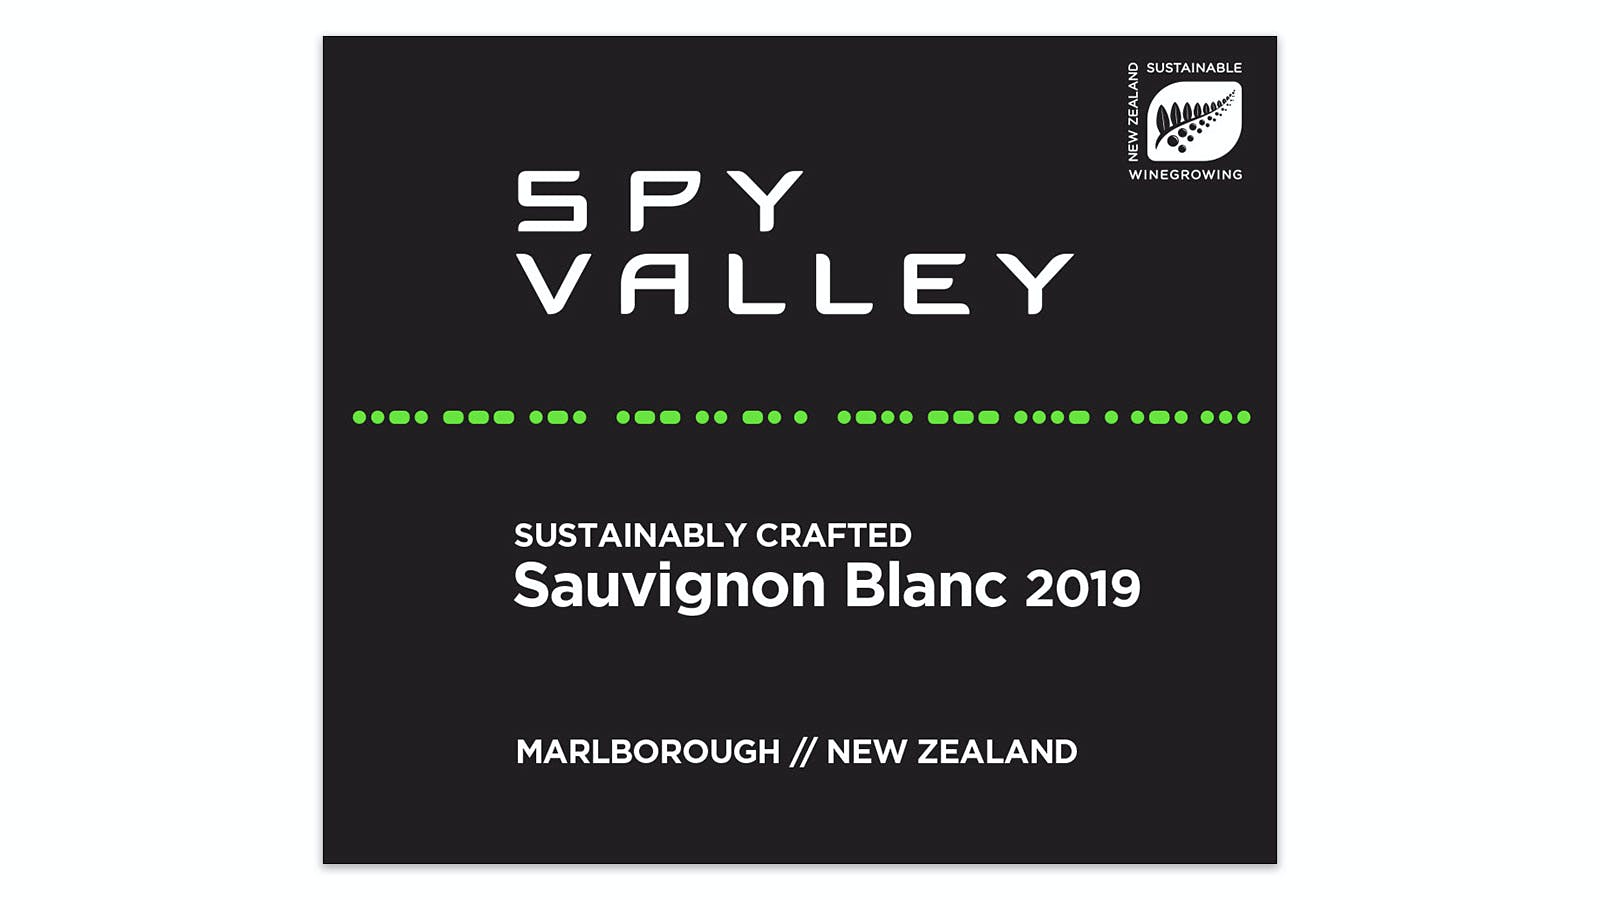 Wine of the Week for March 22, 2021